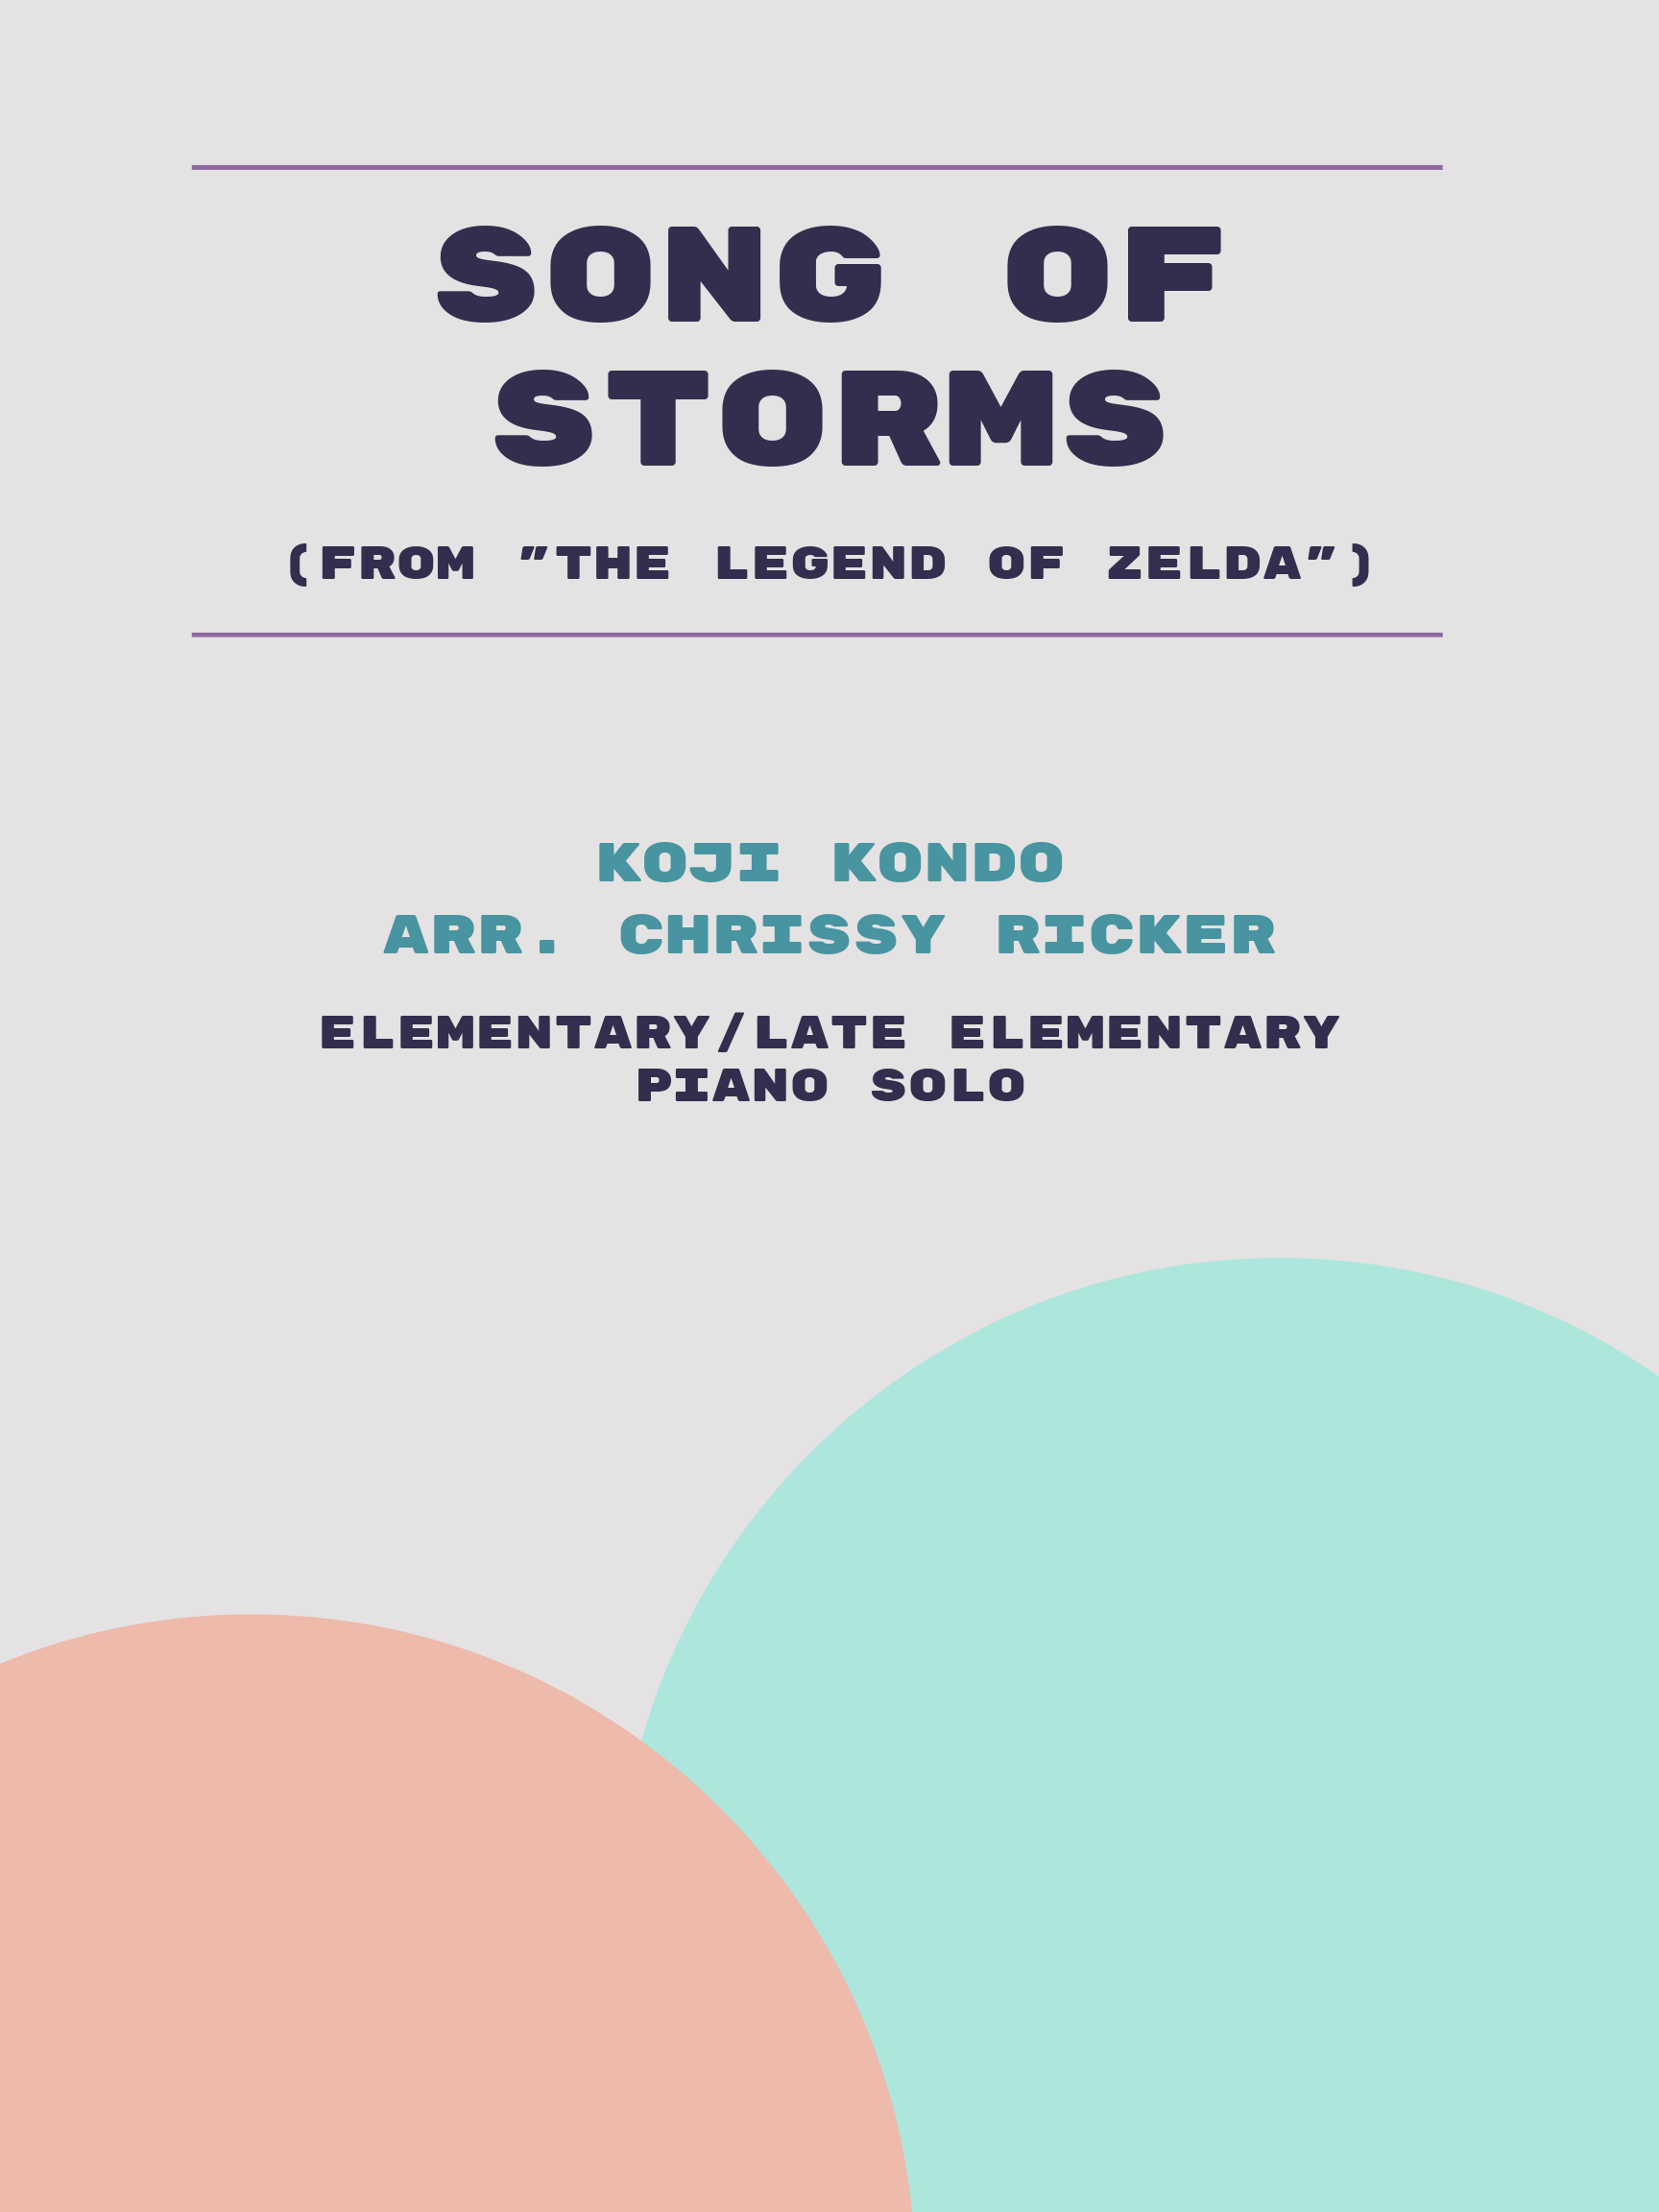 Song of Storms by Koji Kondo